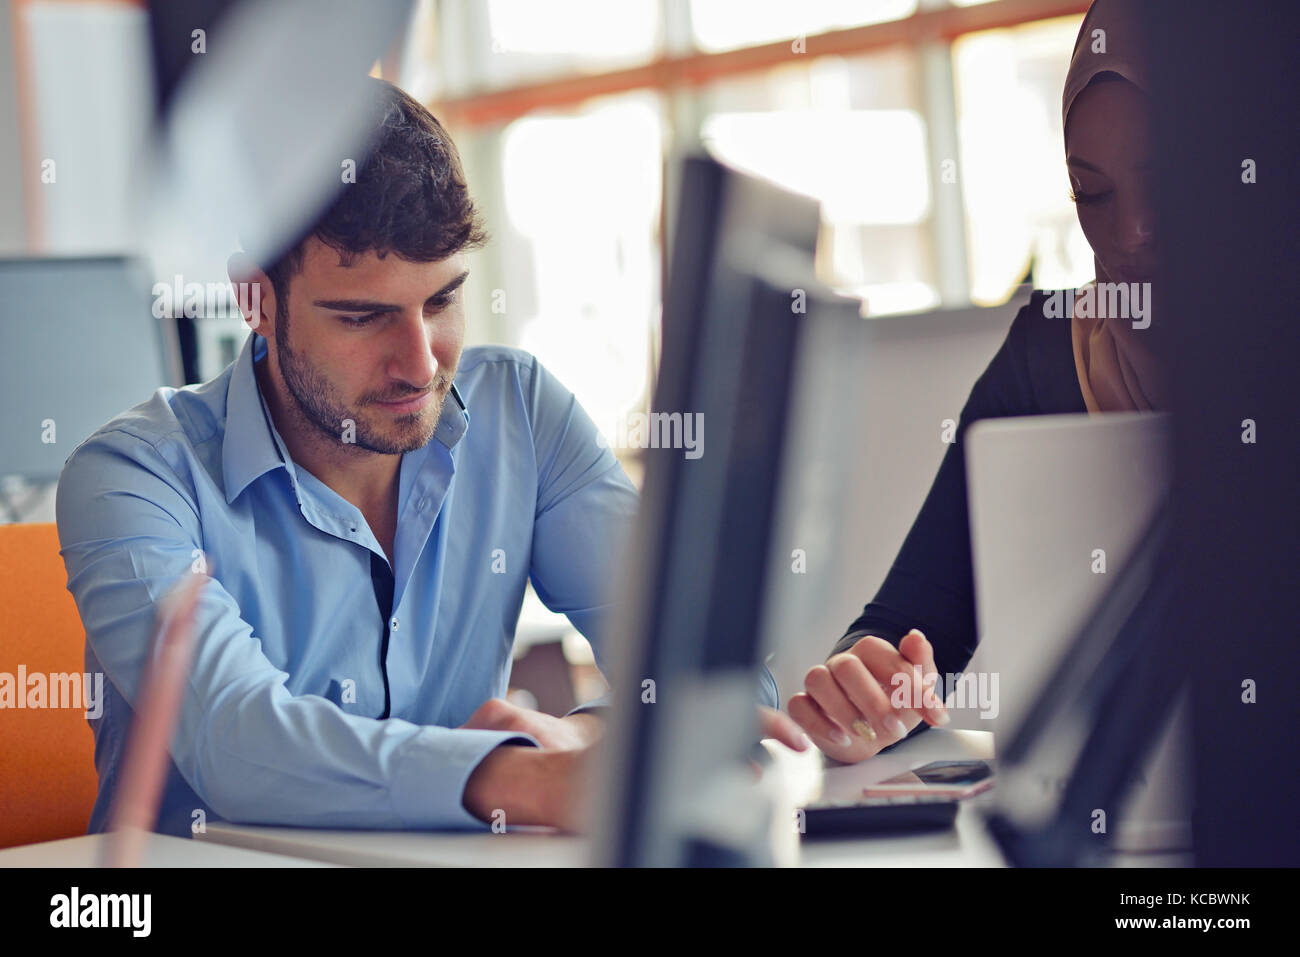 Freelance programmer working in startup office - Stock Image